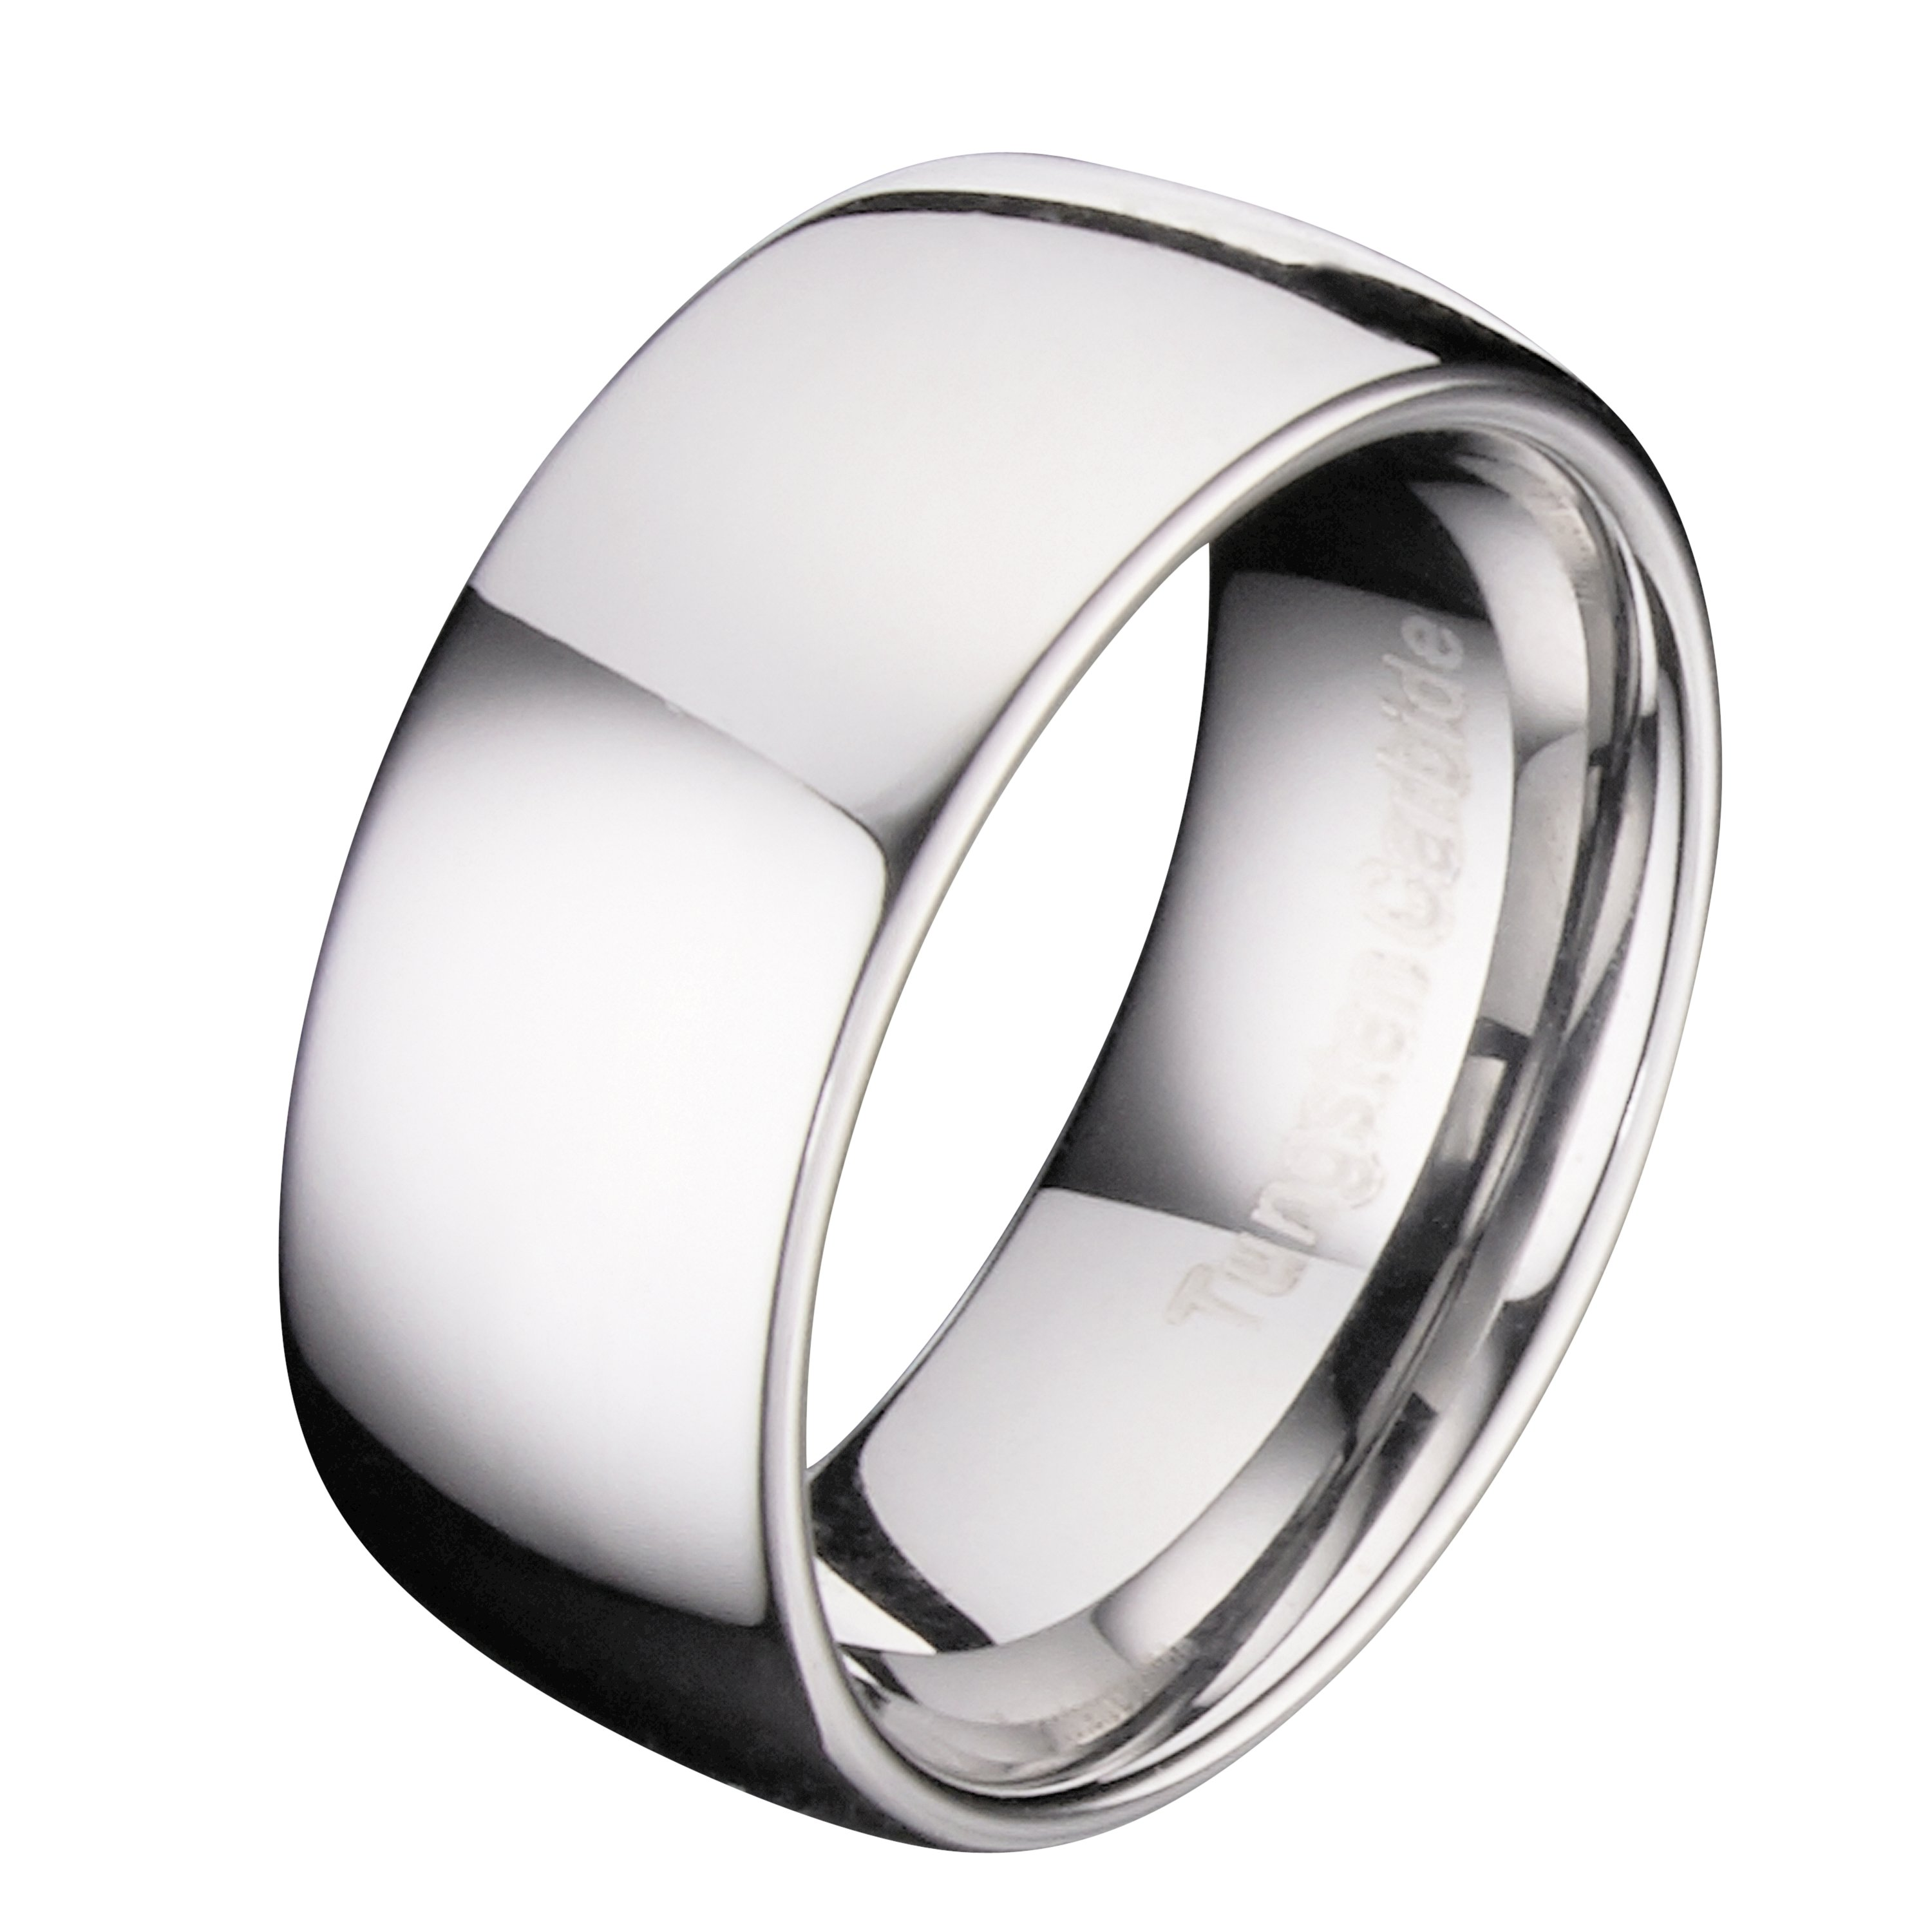 Custom-Engraving-Tungsten-Carbide-Classic-Wedding-Ring-Polished-3mm-to-10mm-Band